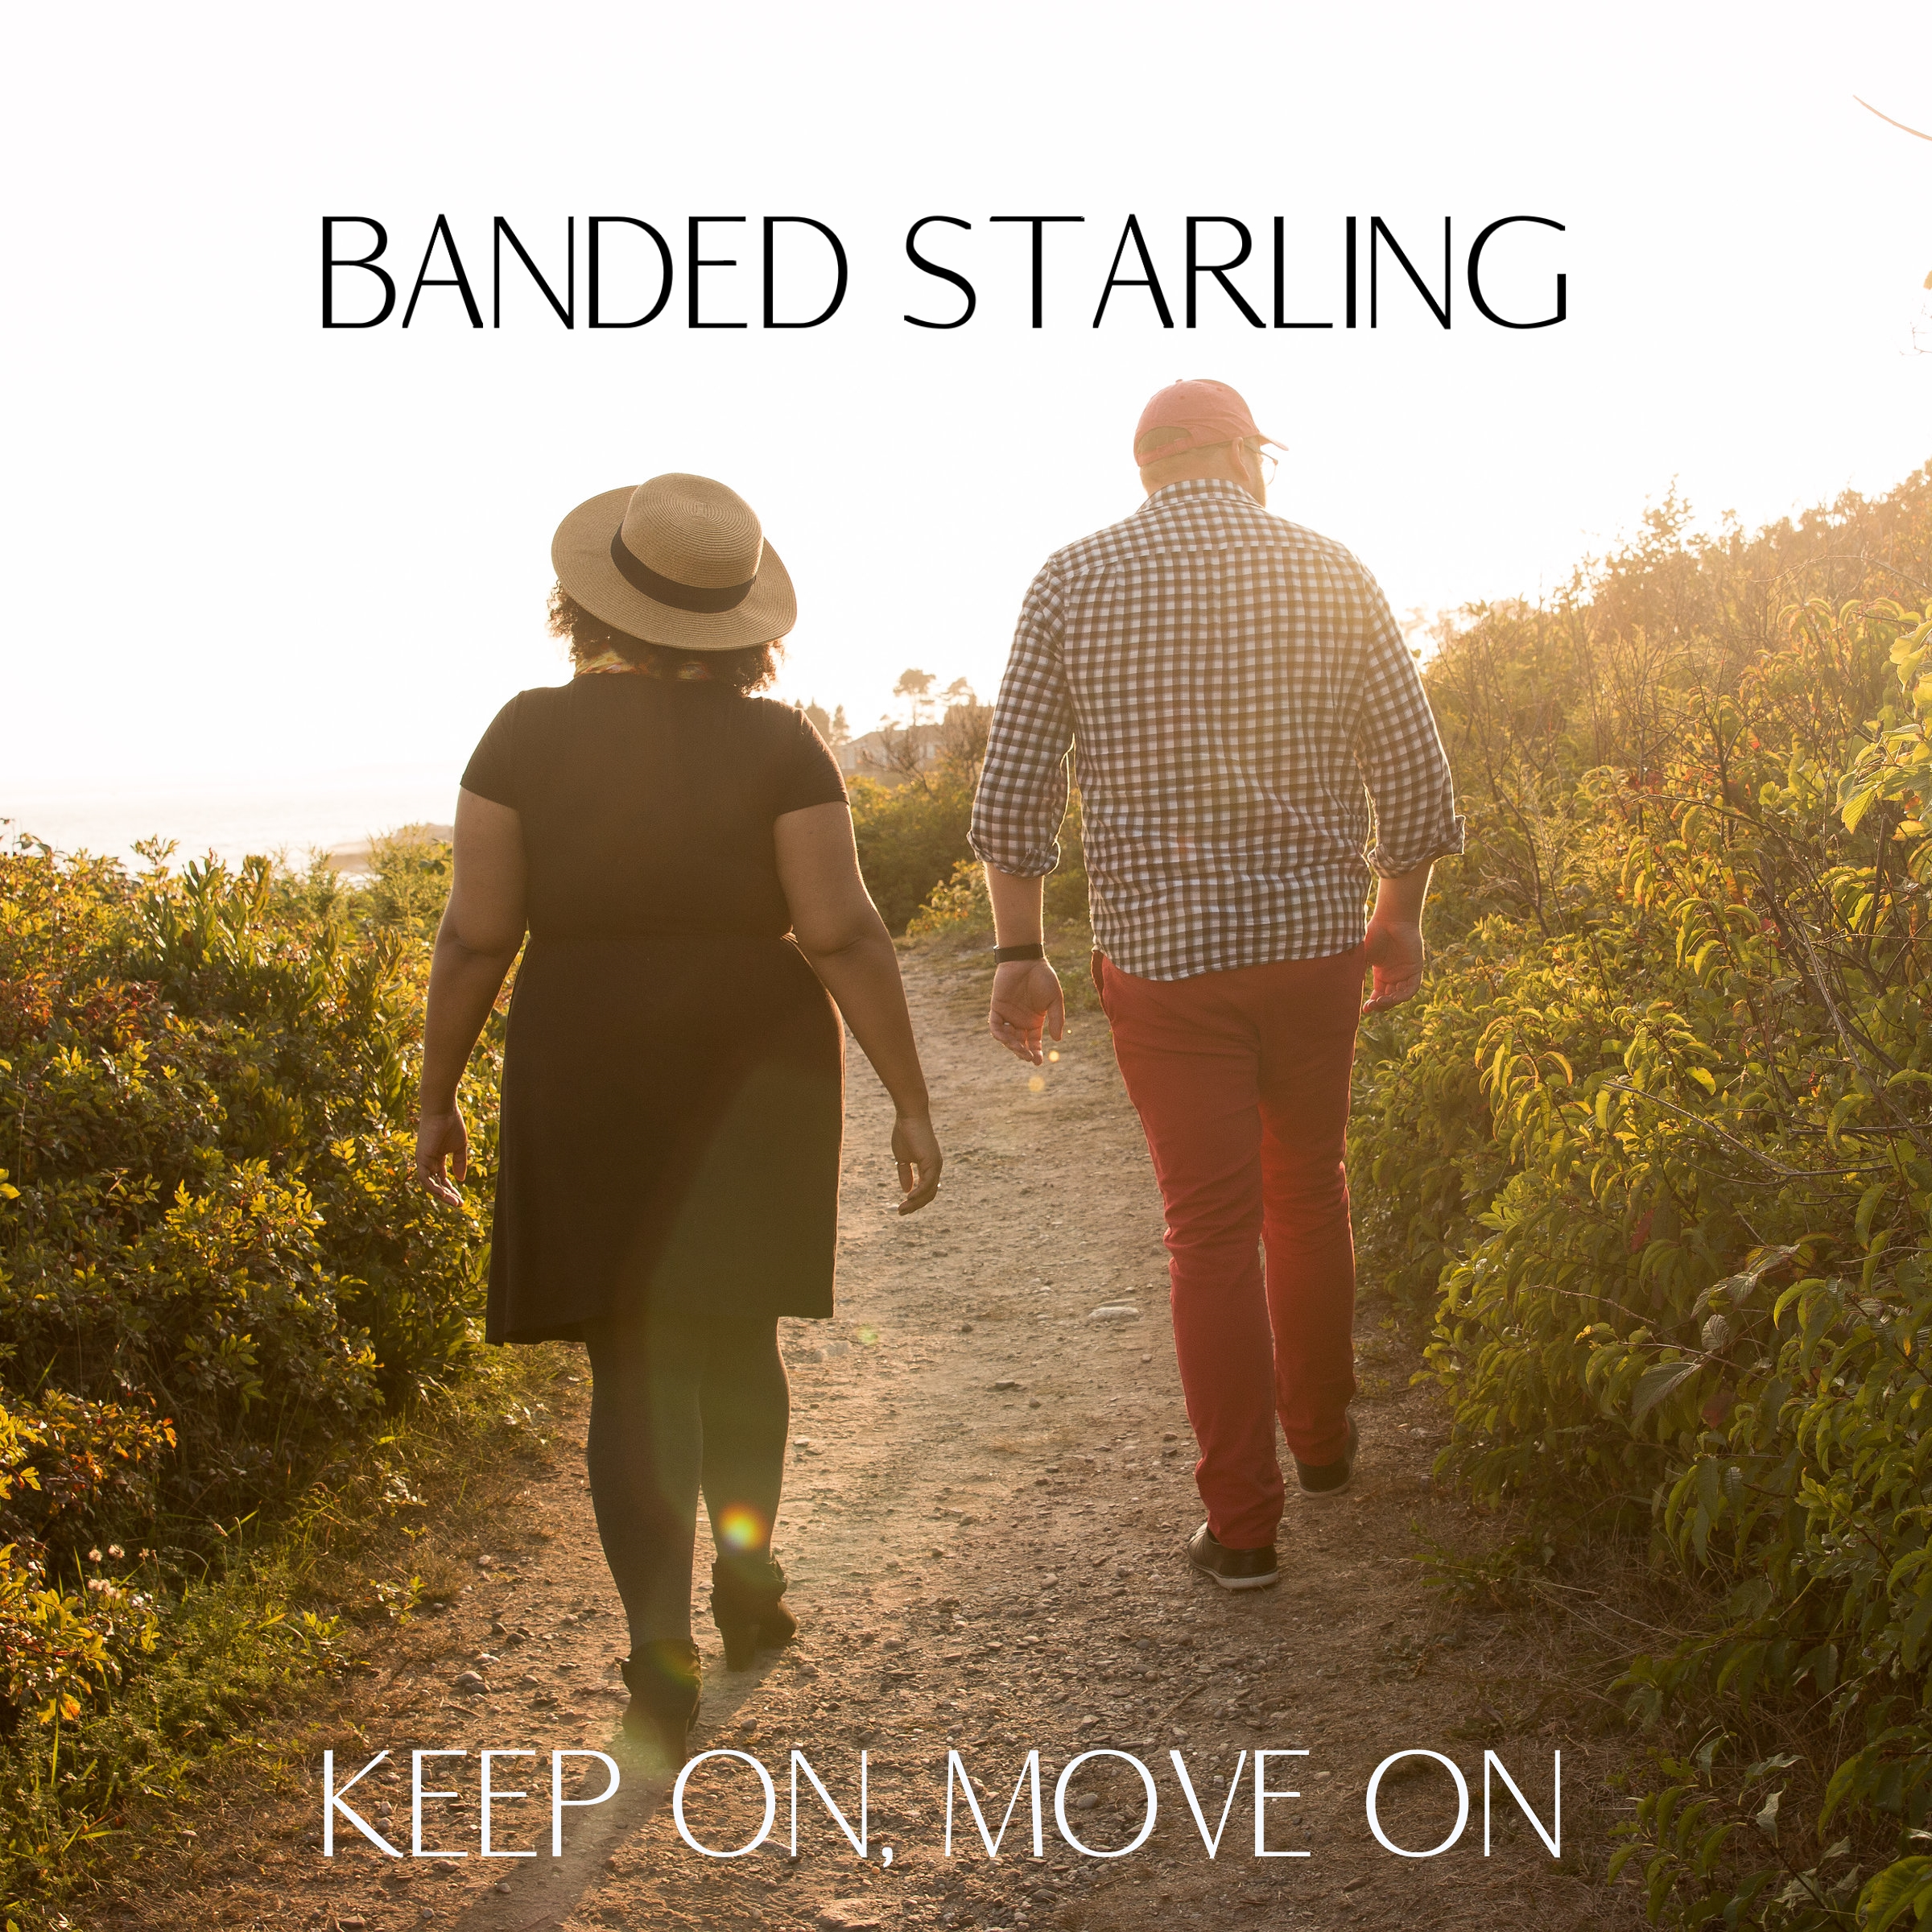 Keep on Move on - Banded Starling's first professionally produced album released November 2018